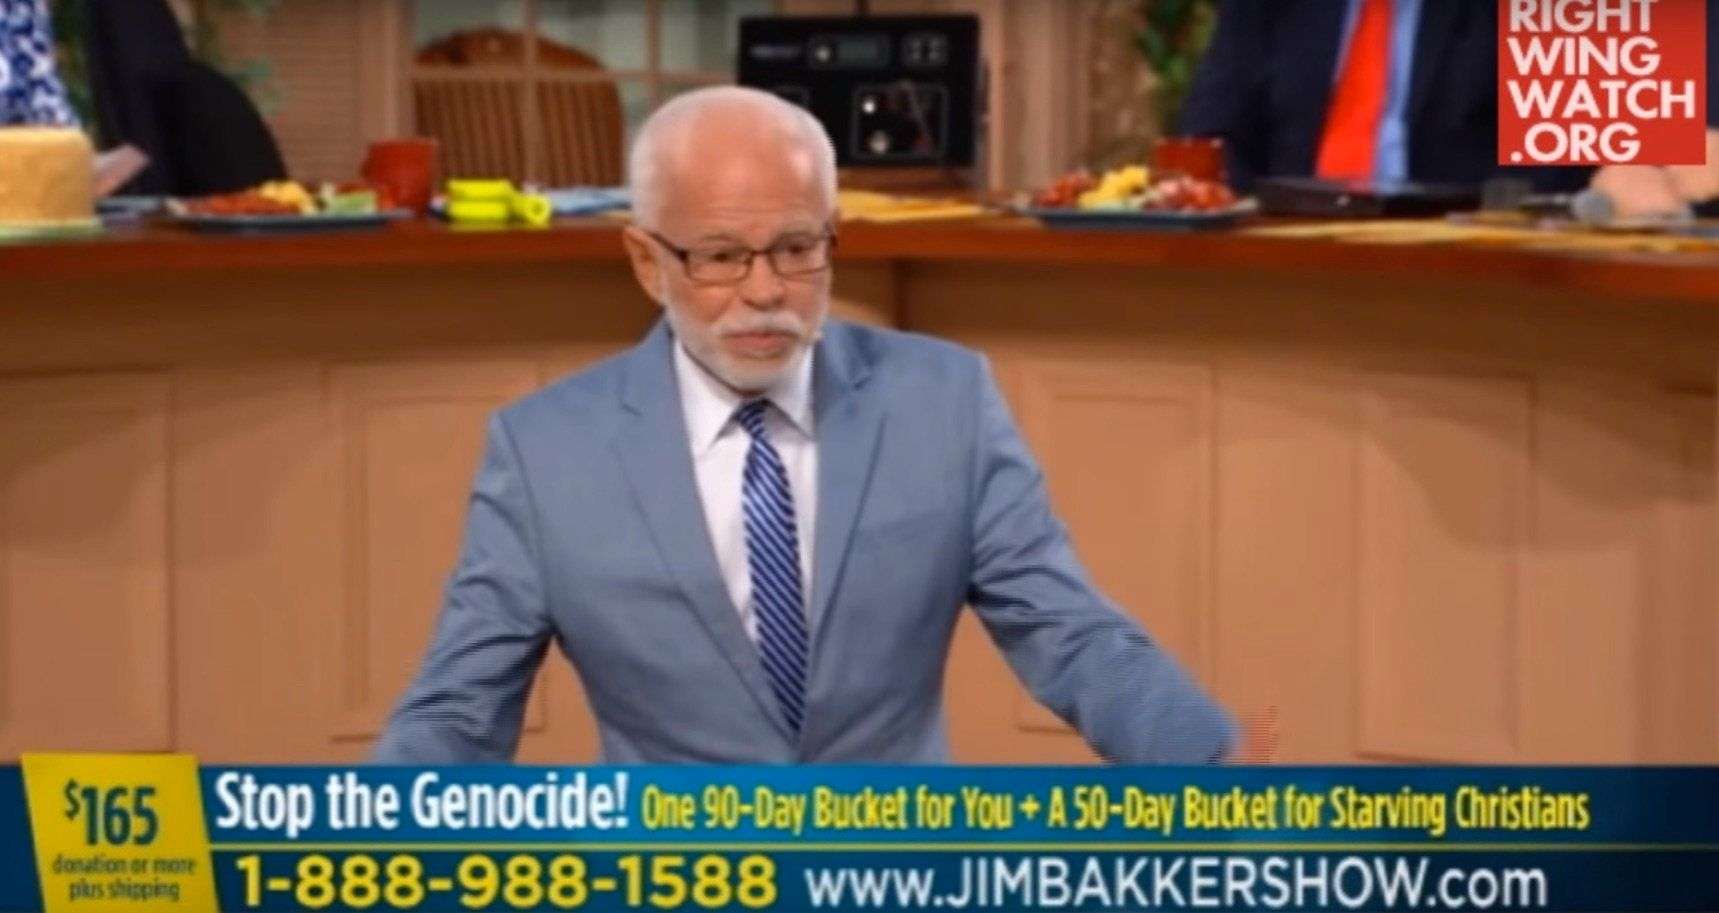 Jim Bakker compares Bernie Sanders to Adolf Hitler.